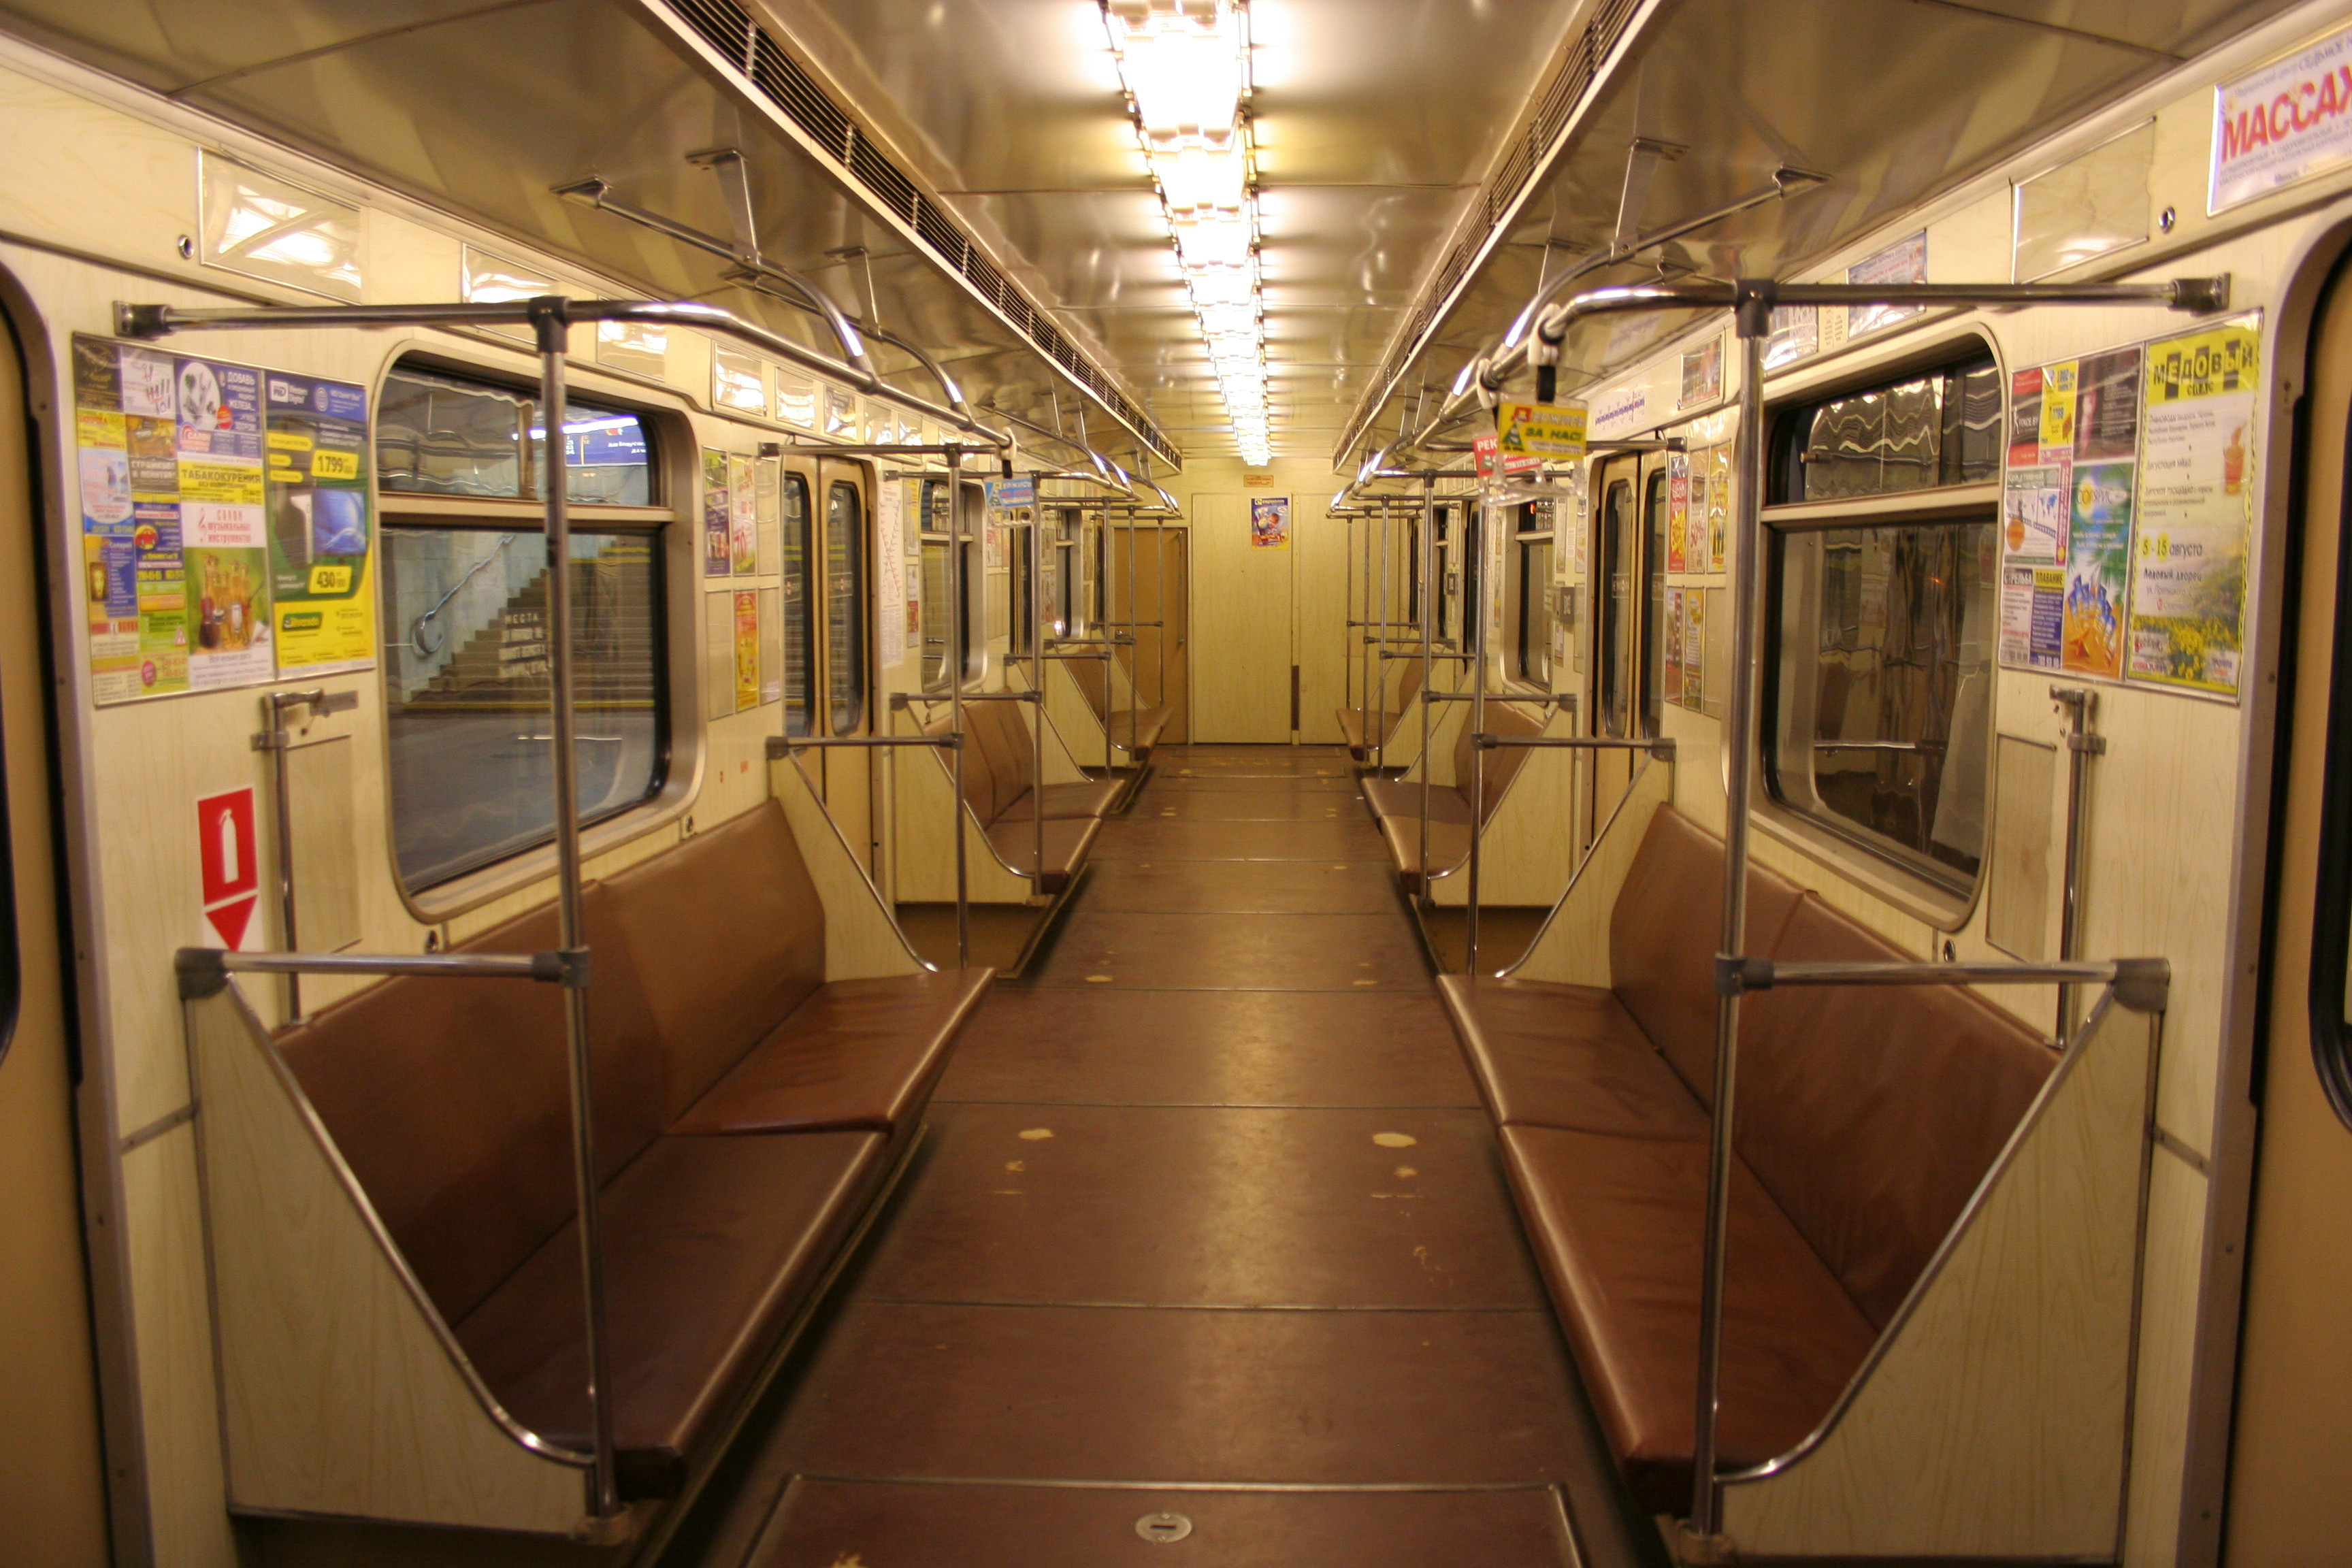 file minsk metro in 2010 train interior on the blue wikimedia commons. Black Bedroom Furniture Sets. Home Design Ideas